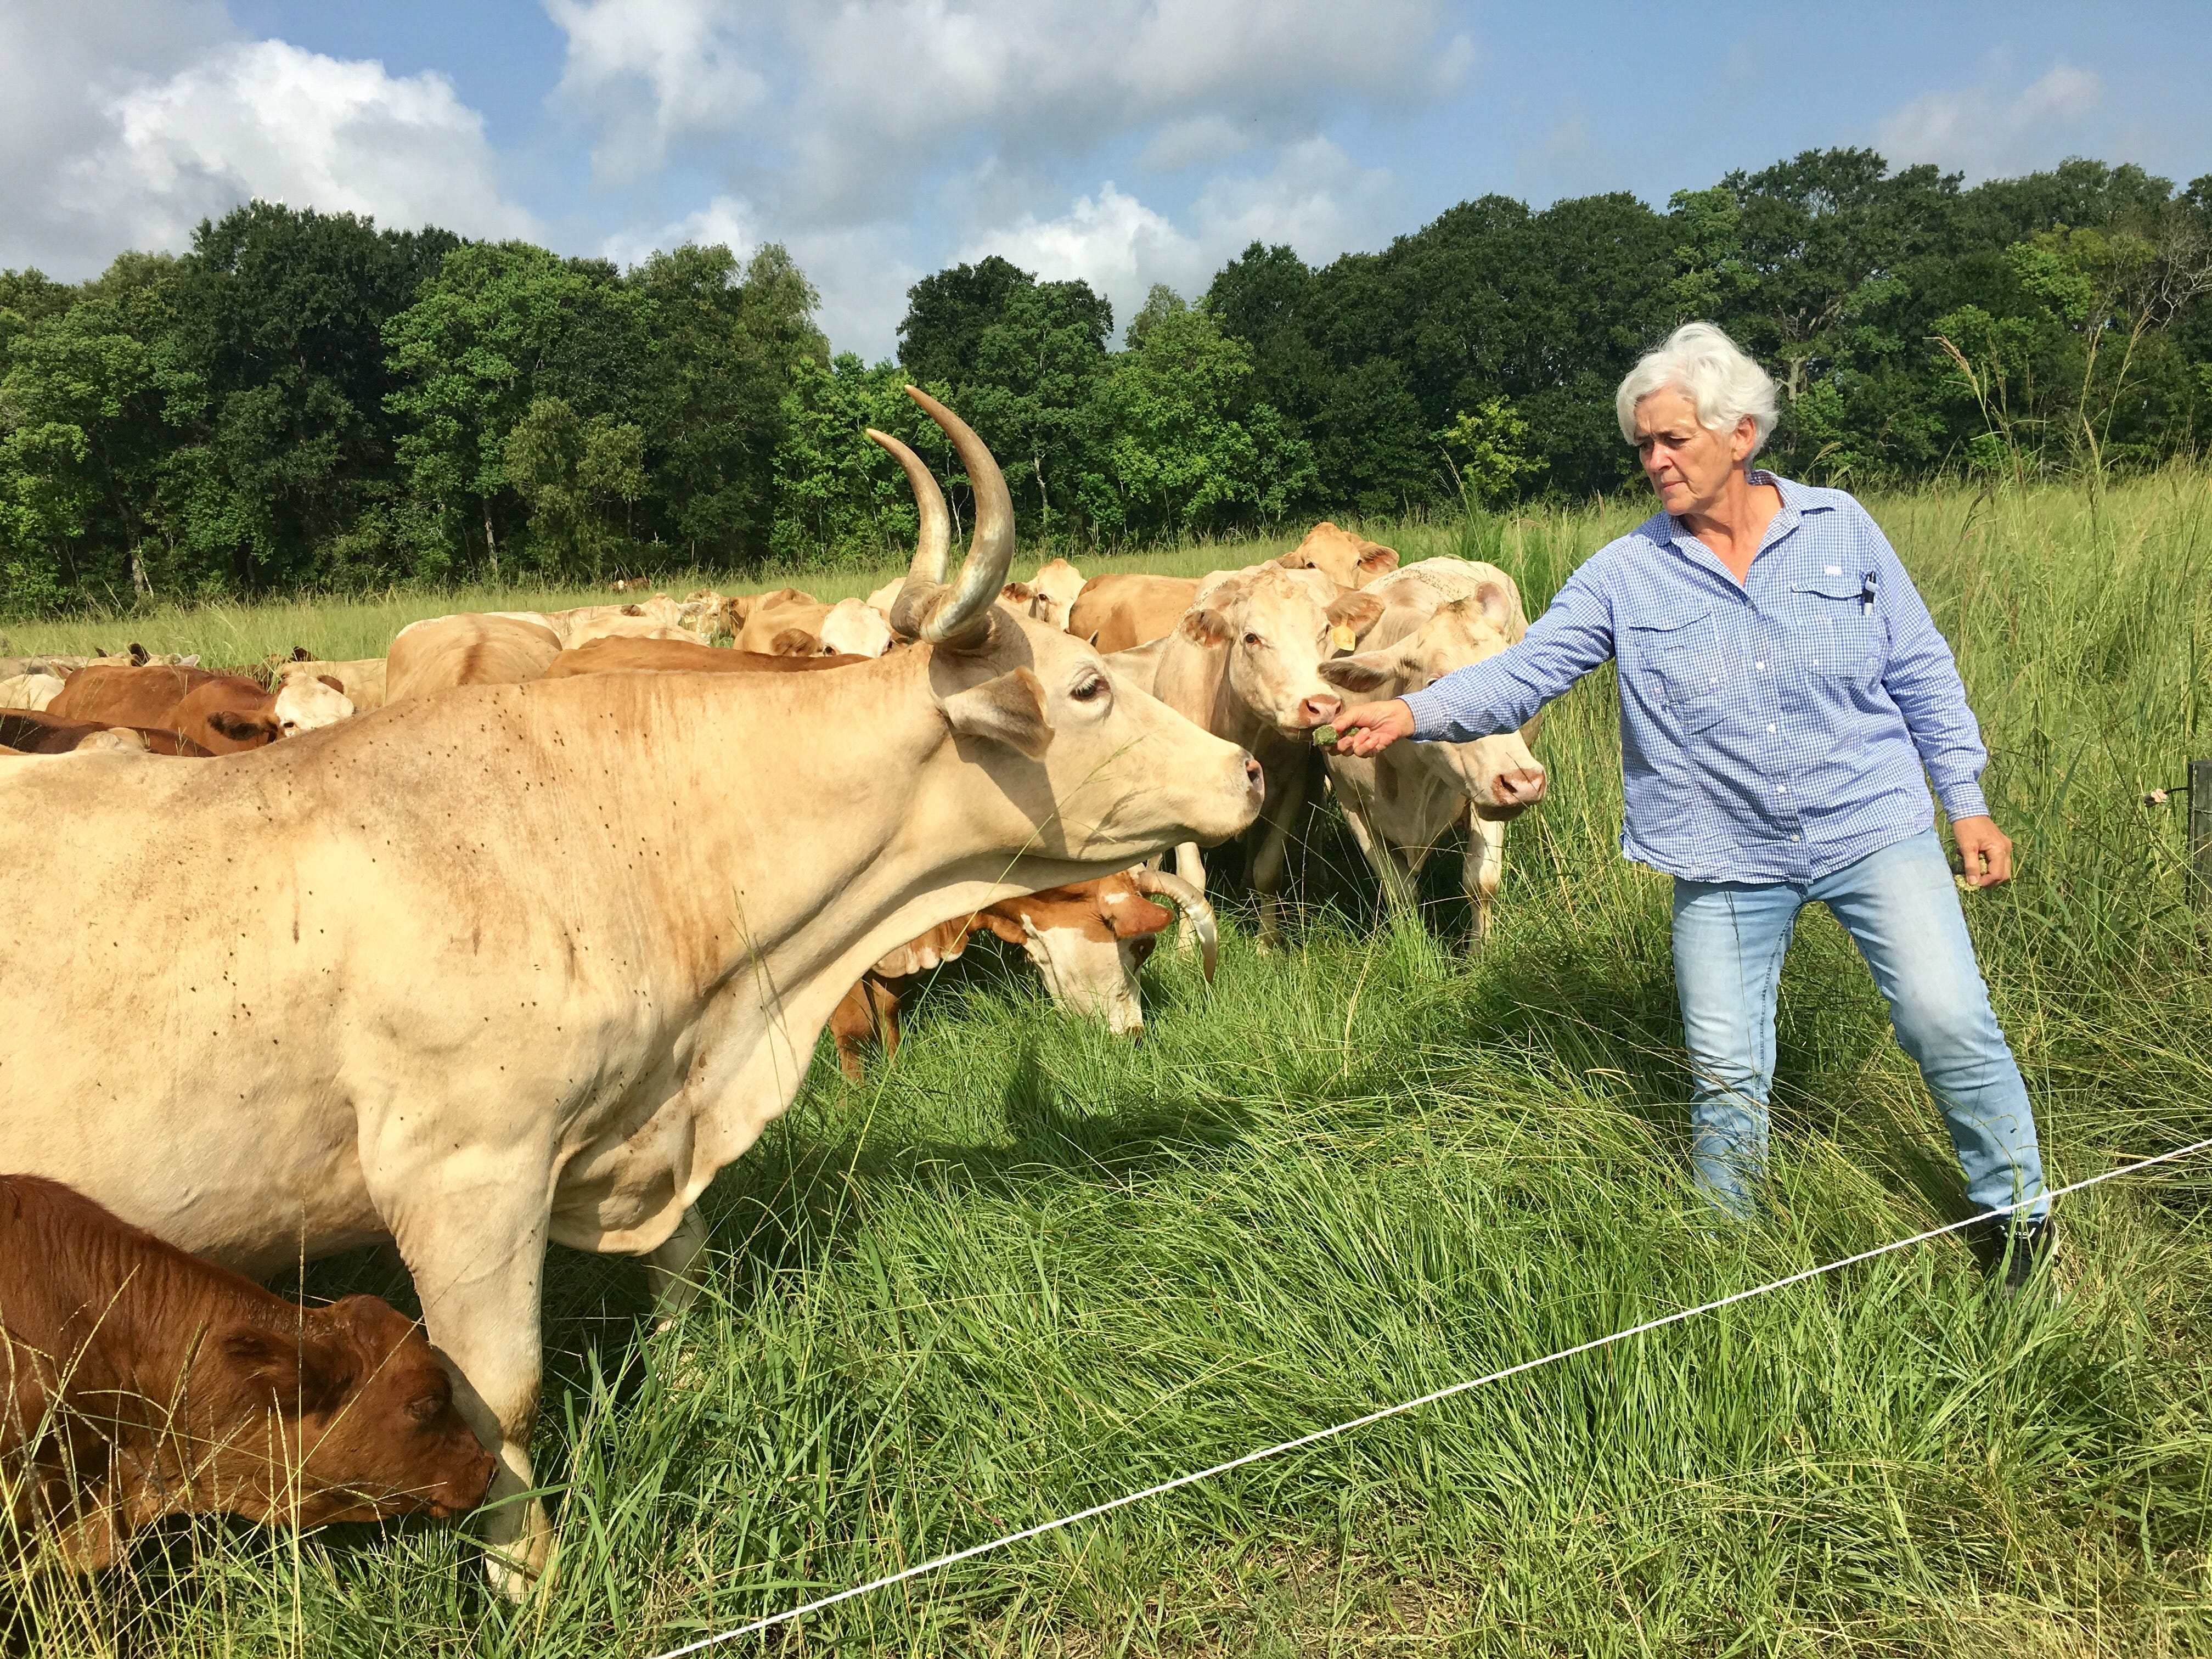 Brookshire Farm owner Anne Blanchet feeds her cows while giving a tour July 20, 2018.